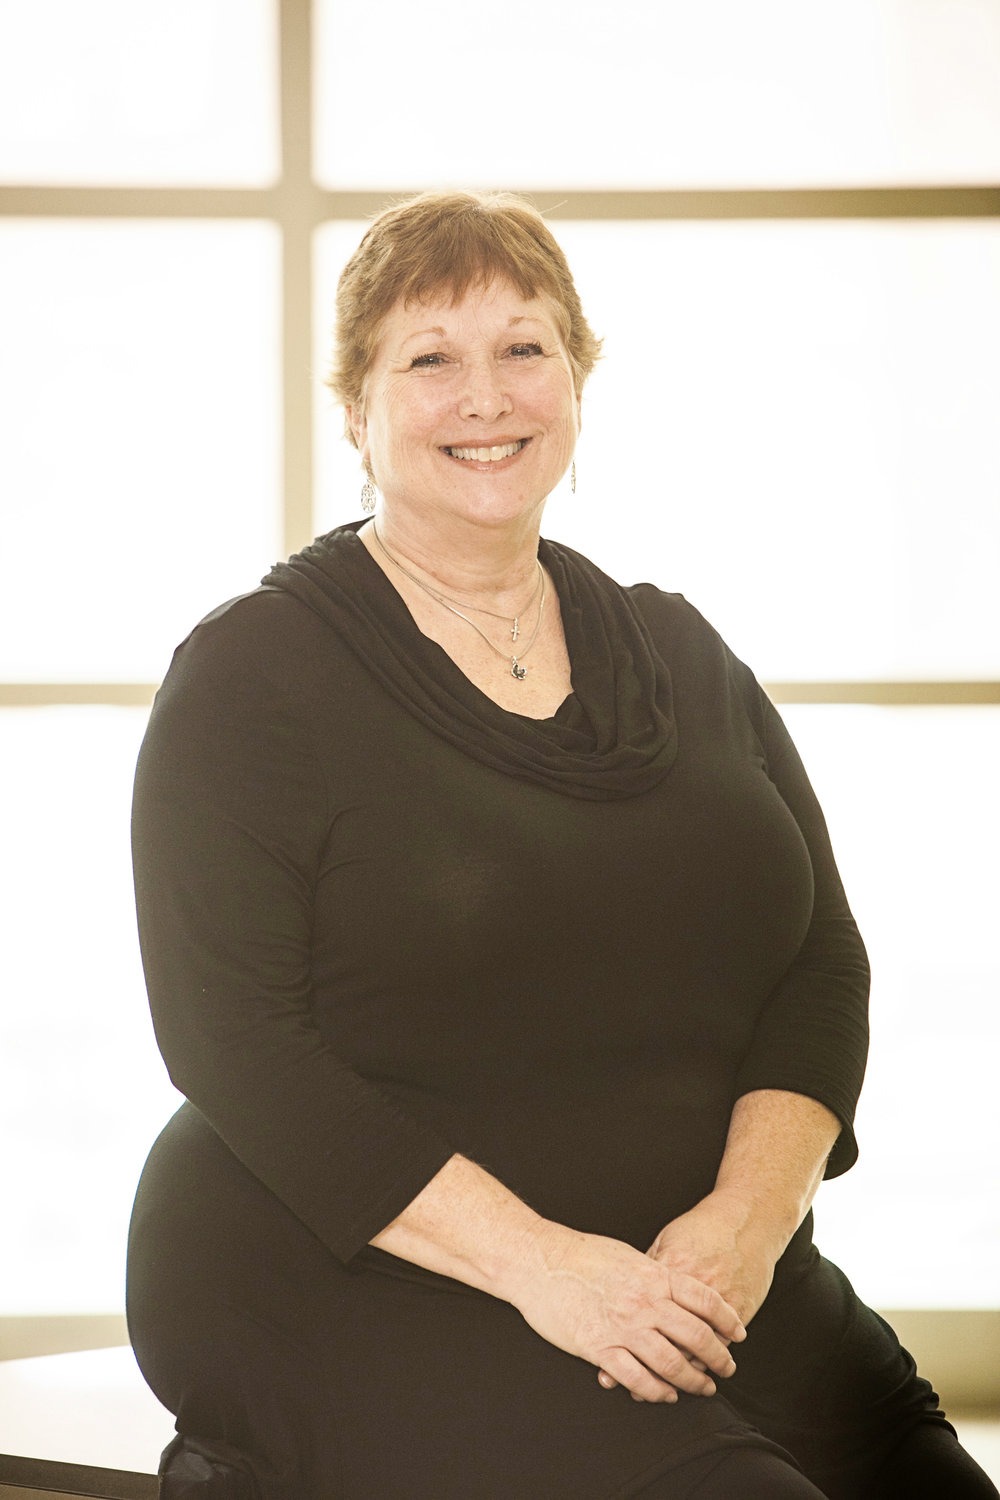 Karen mathews - dance class instructor